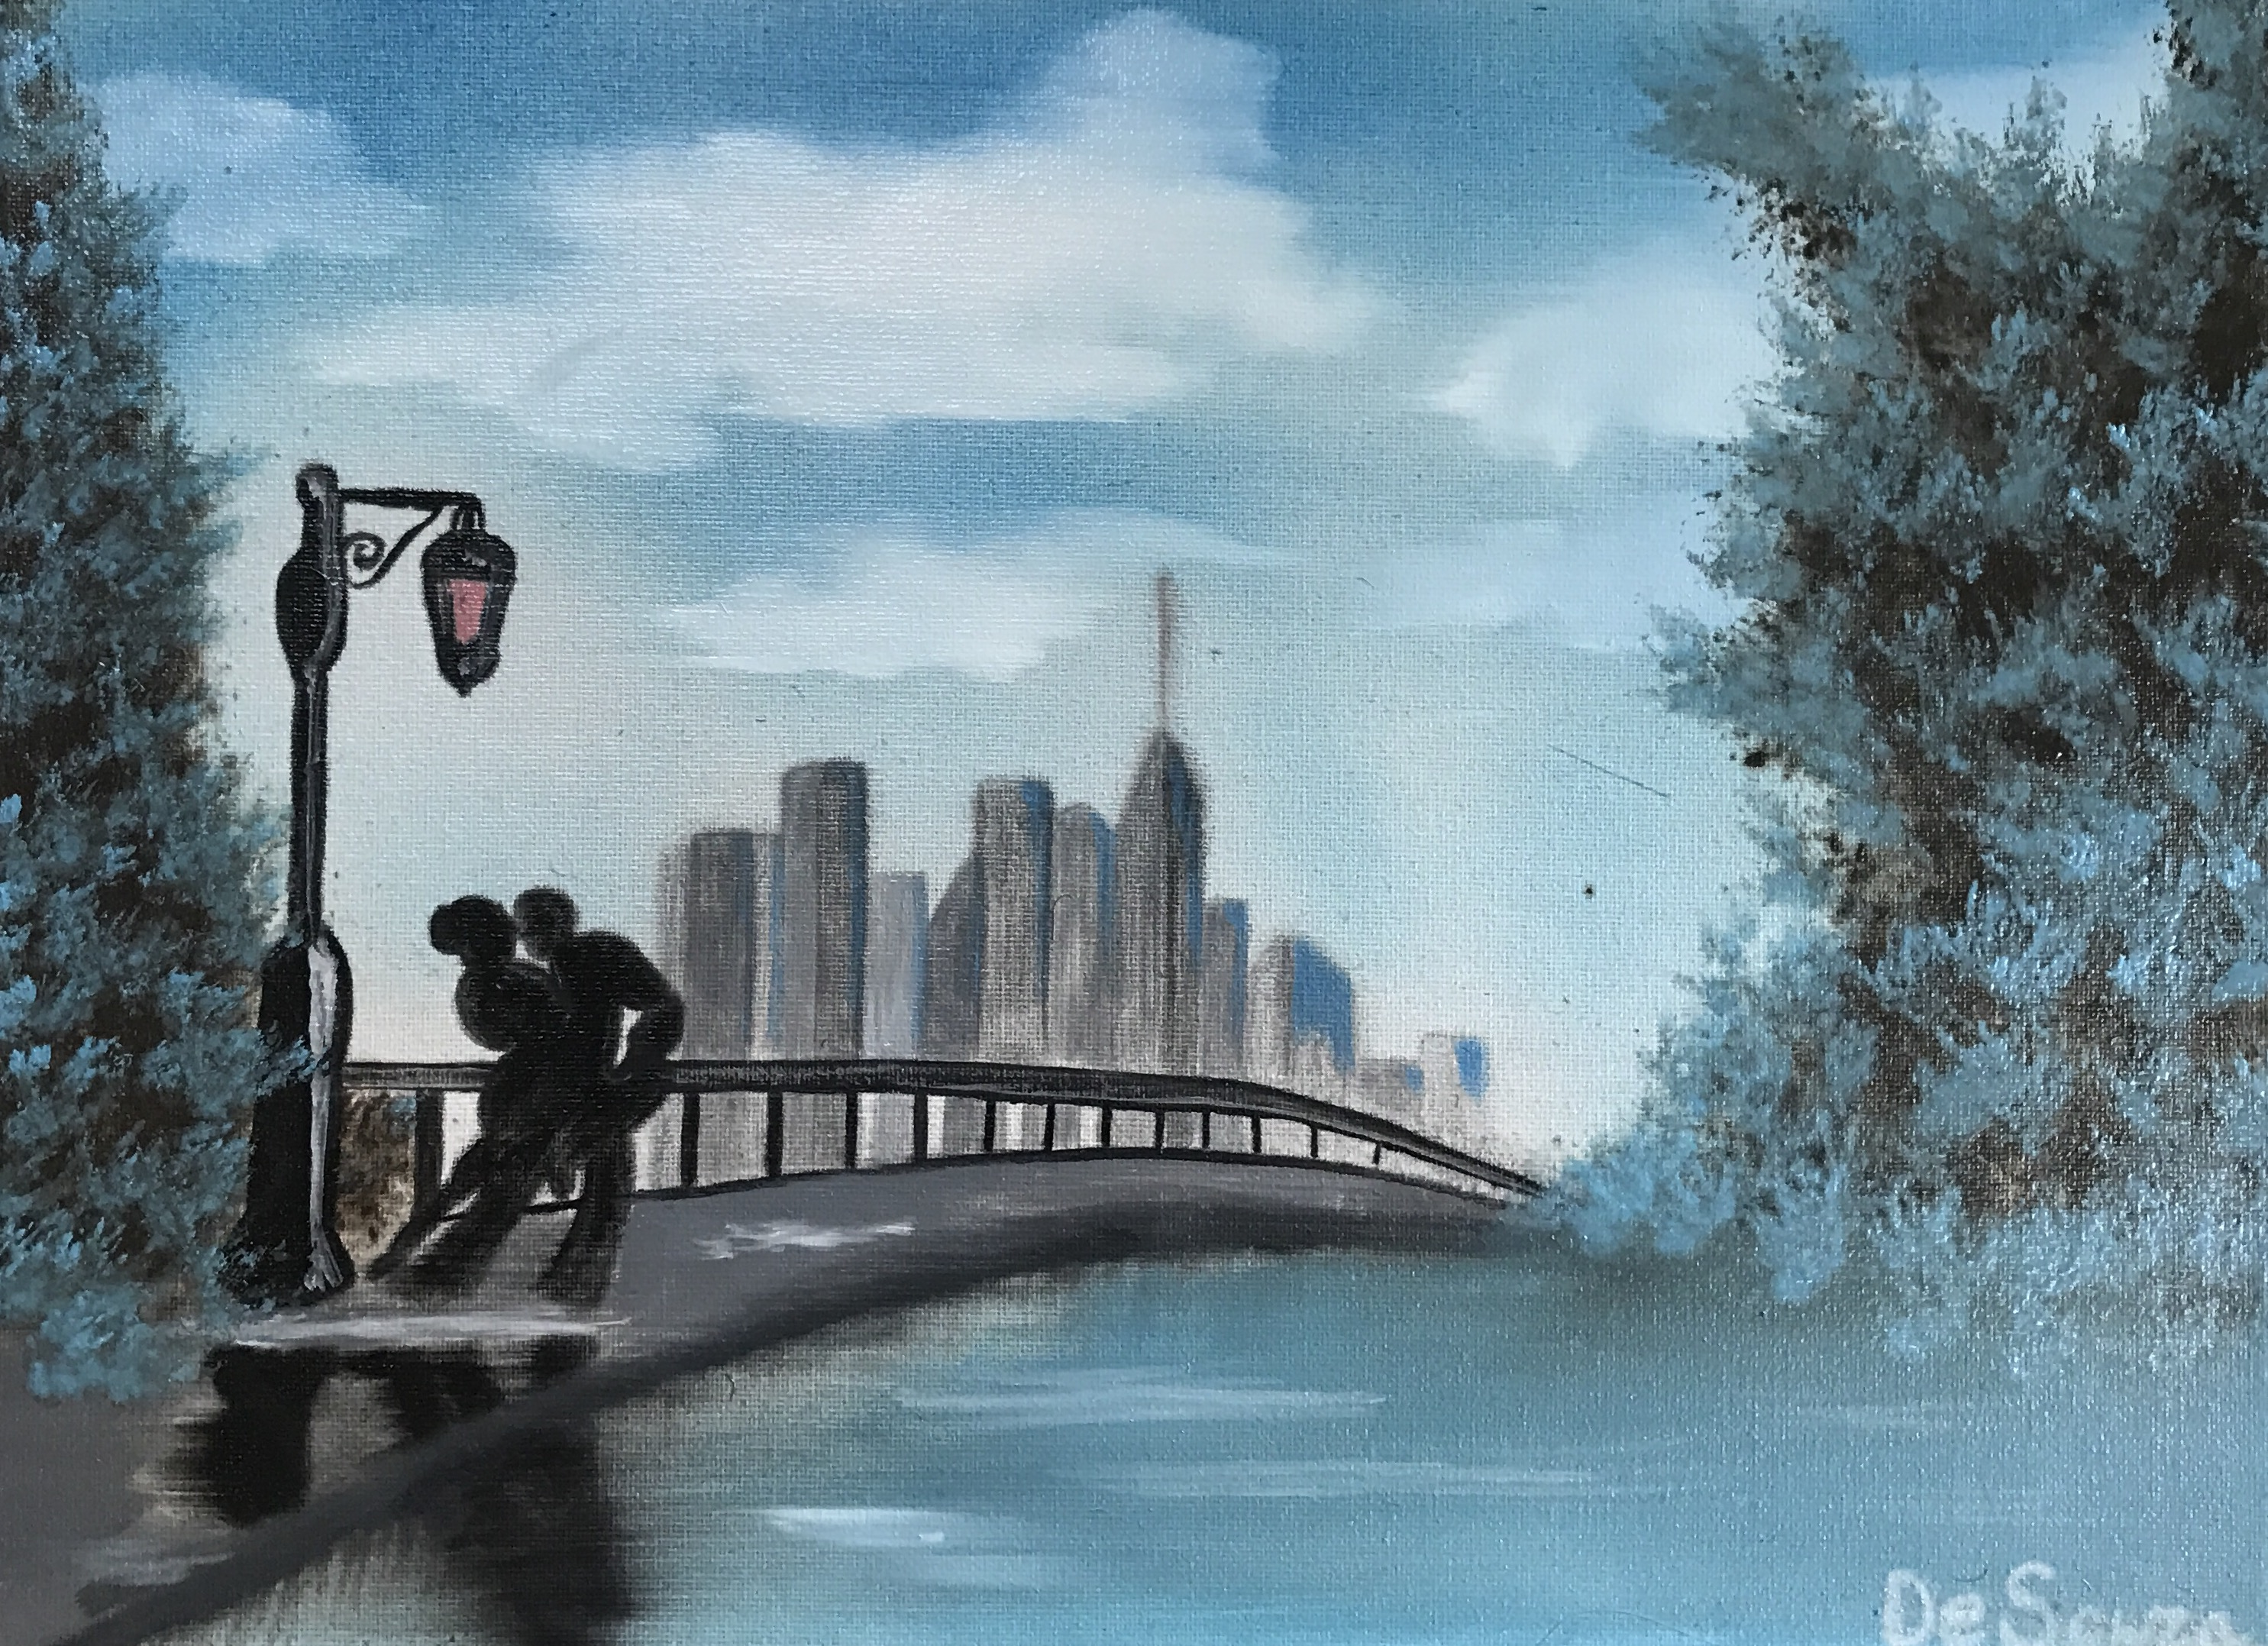 Oil on canvas by Davethepioneer